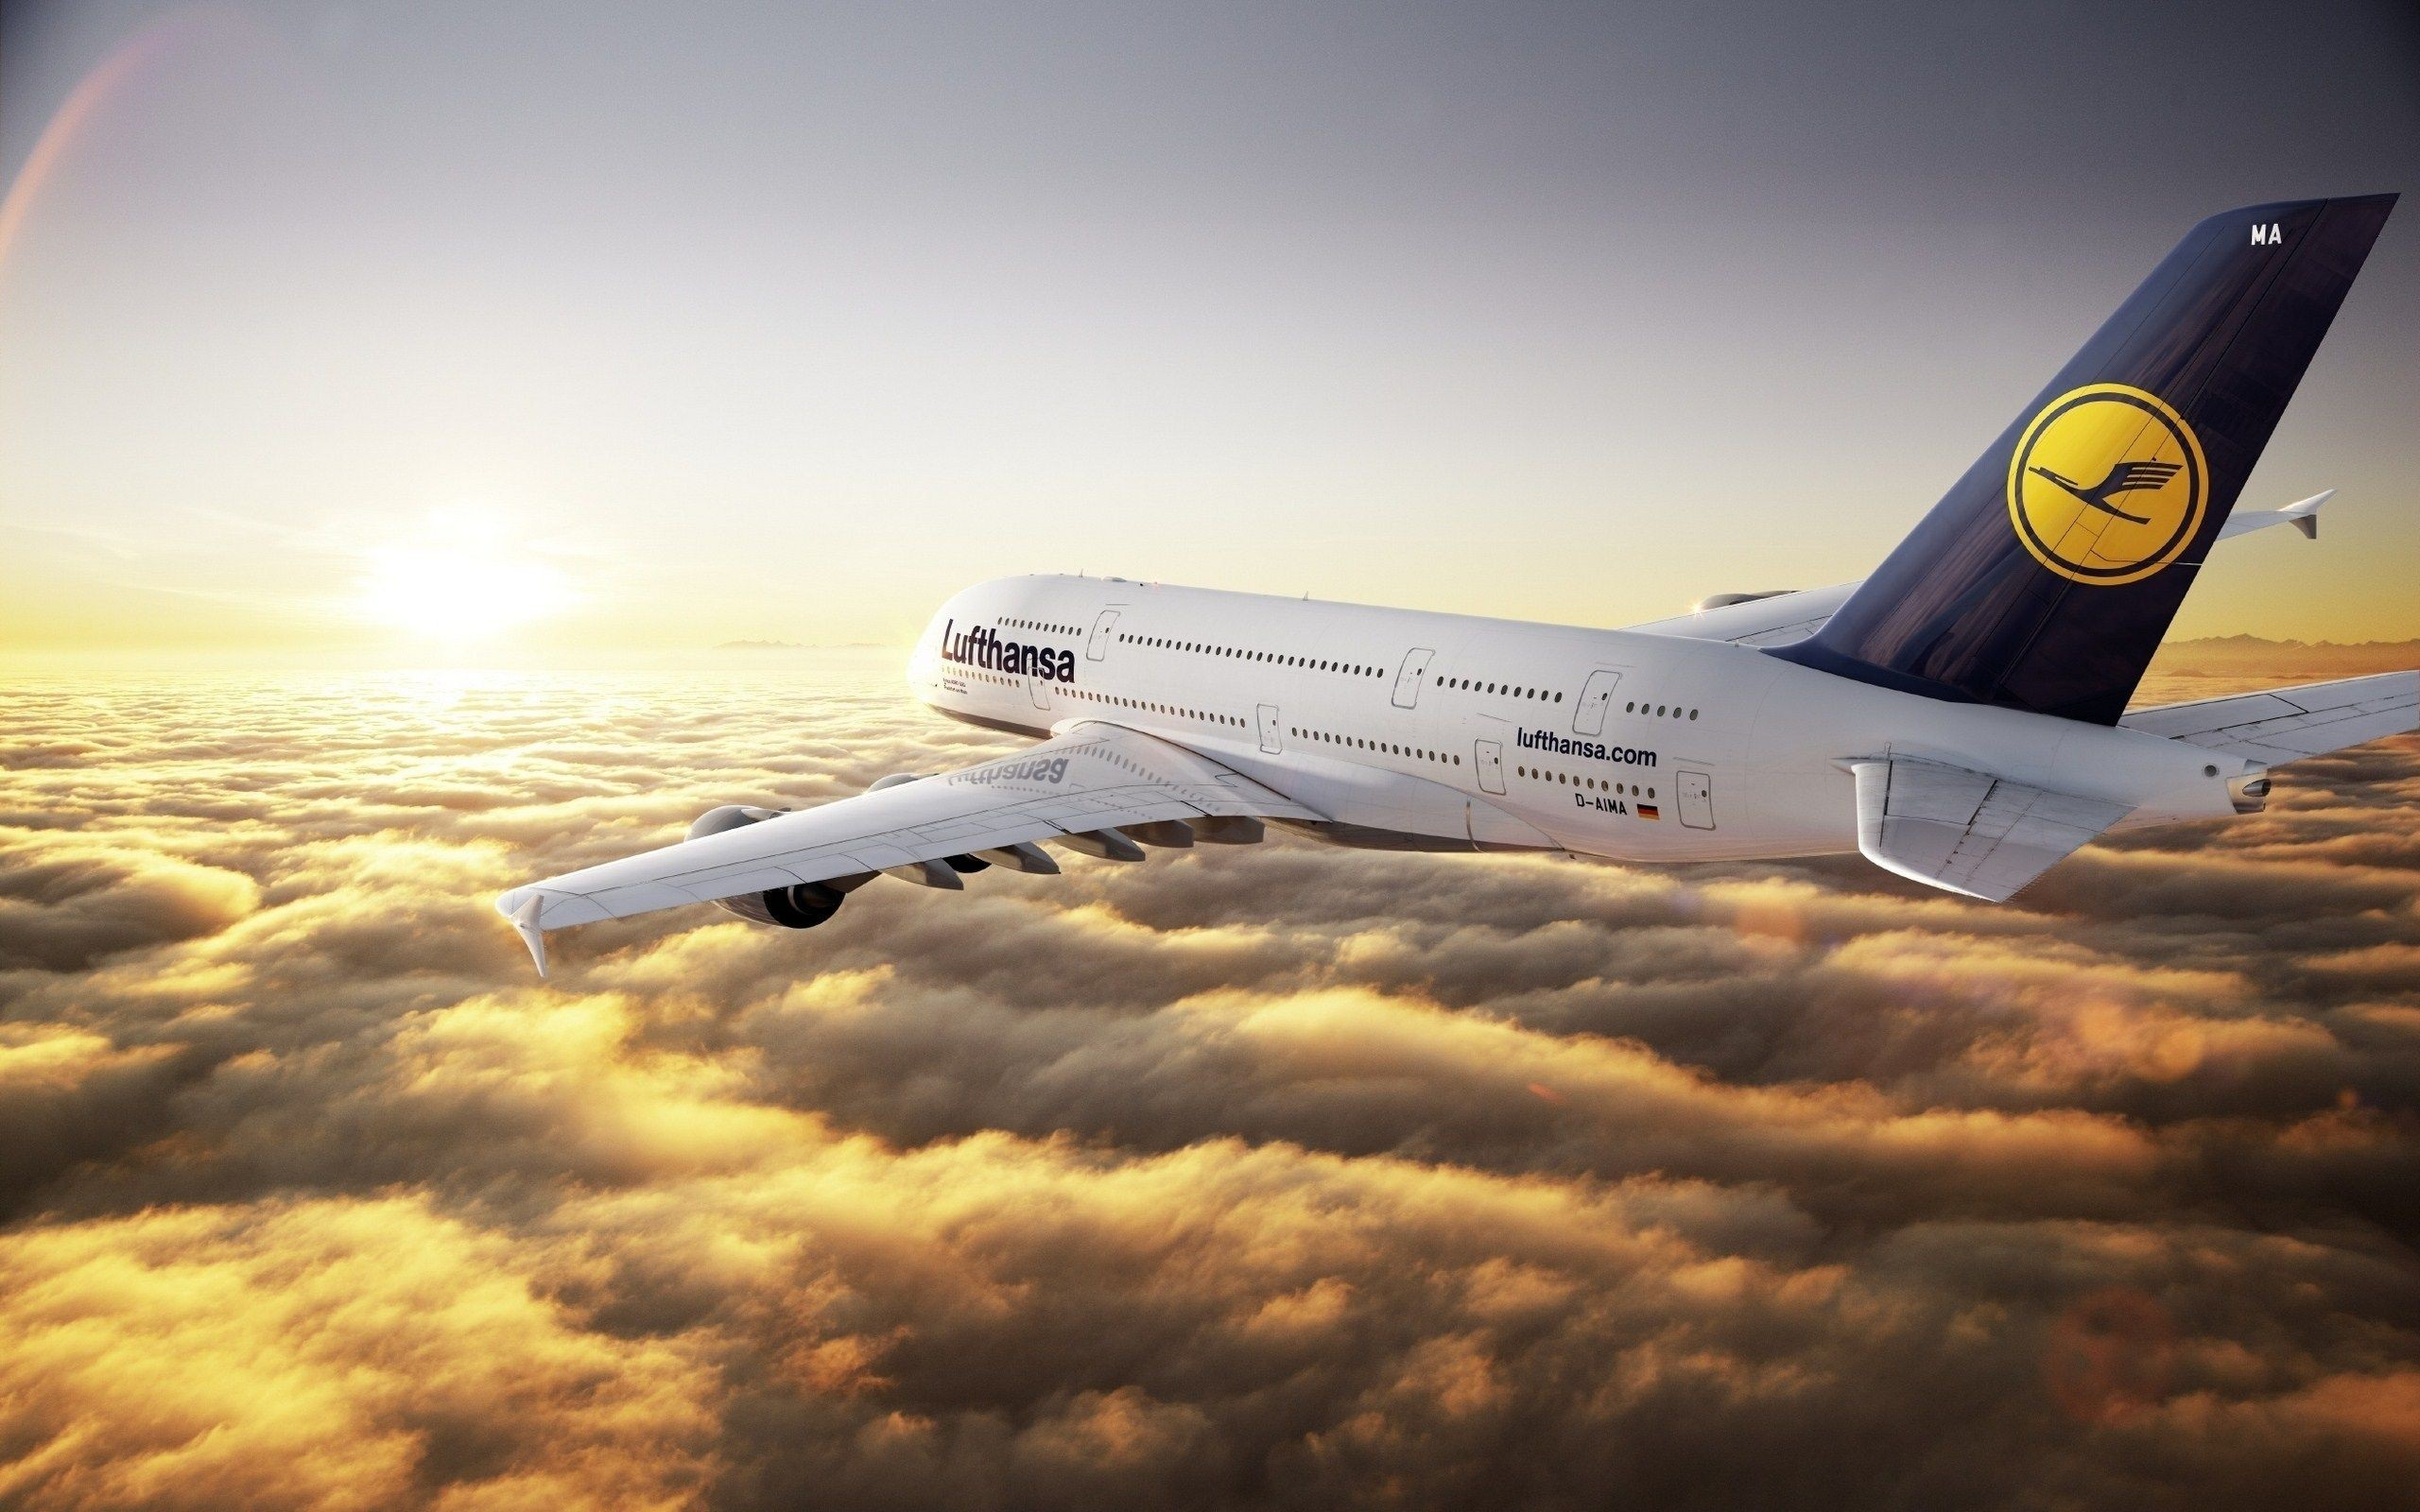 Airbus A380 HD Wallpaper Background Image 2560x1600 ID 2560x1600